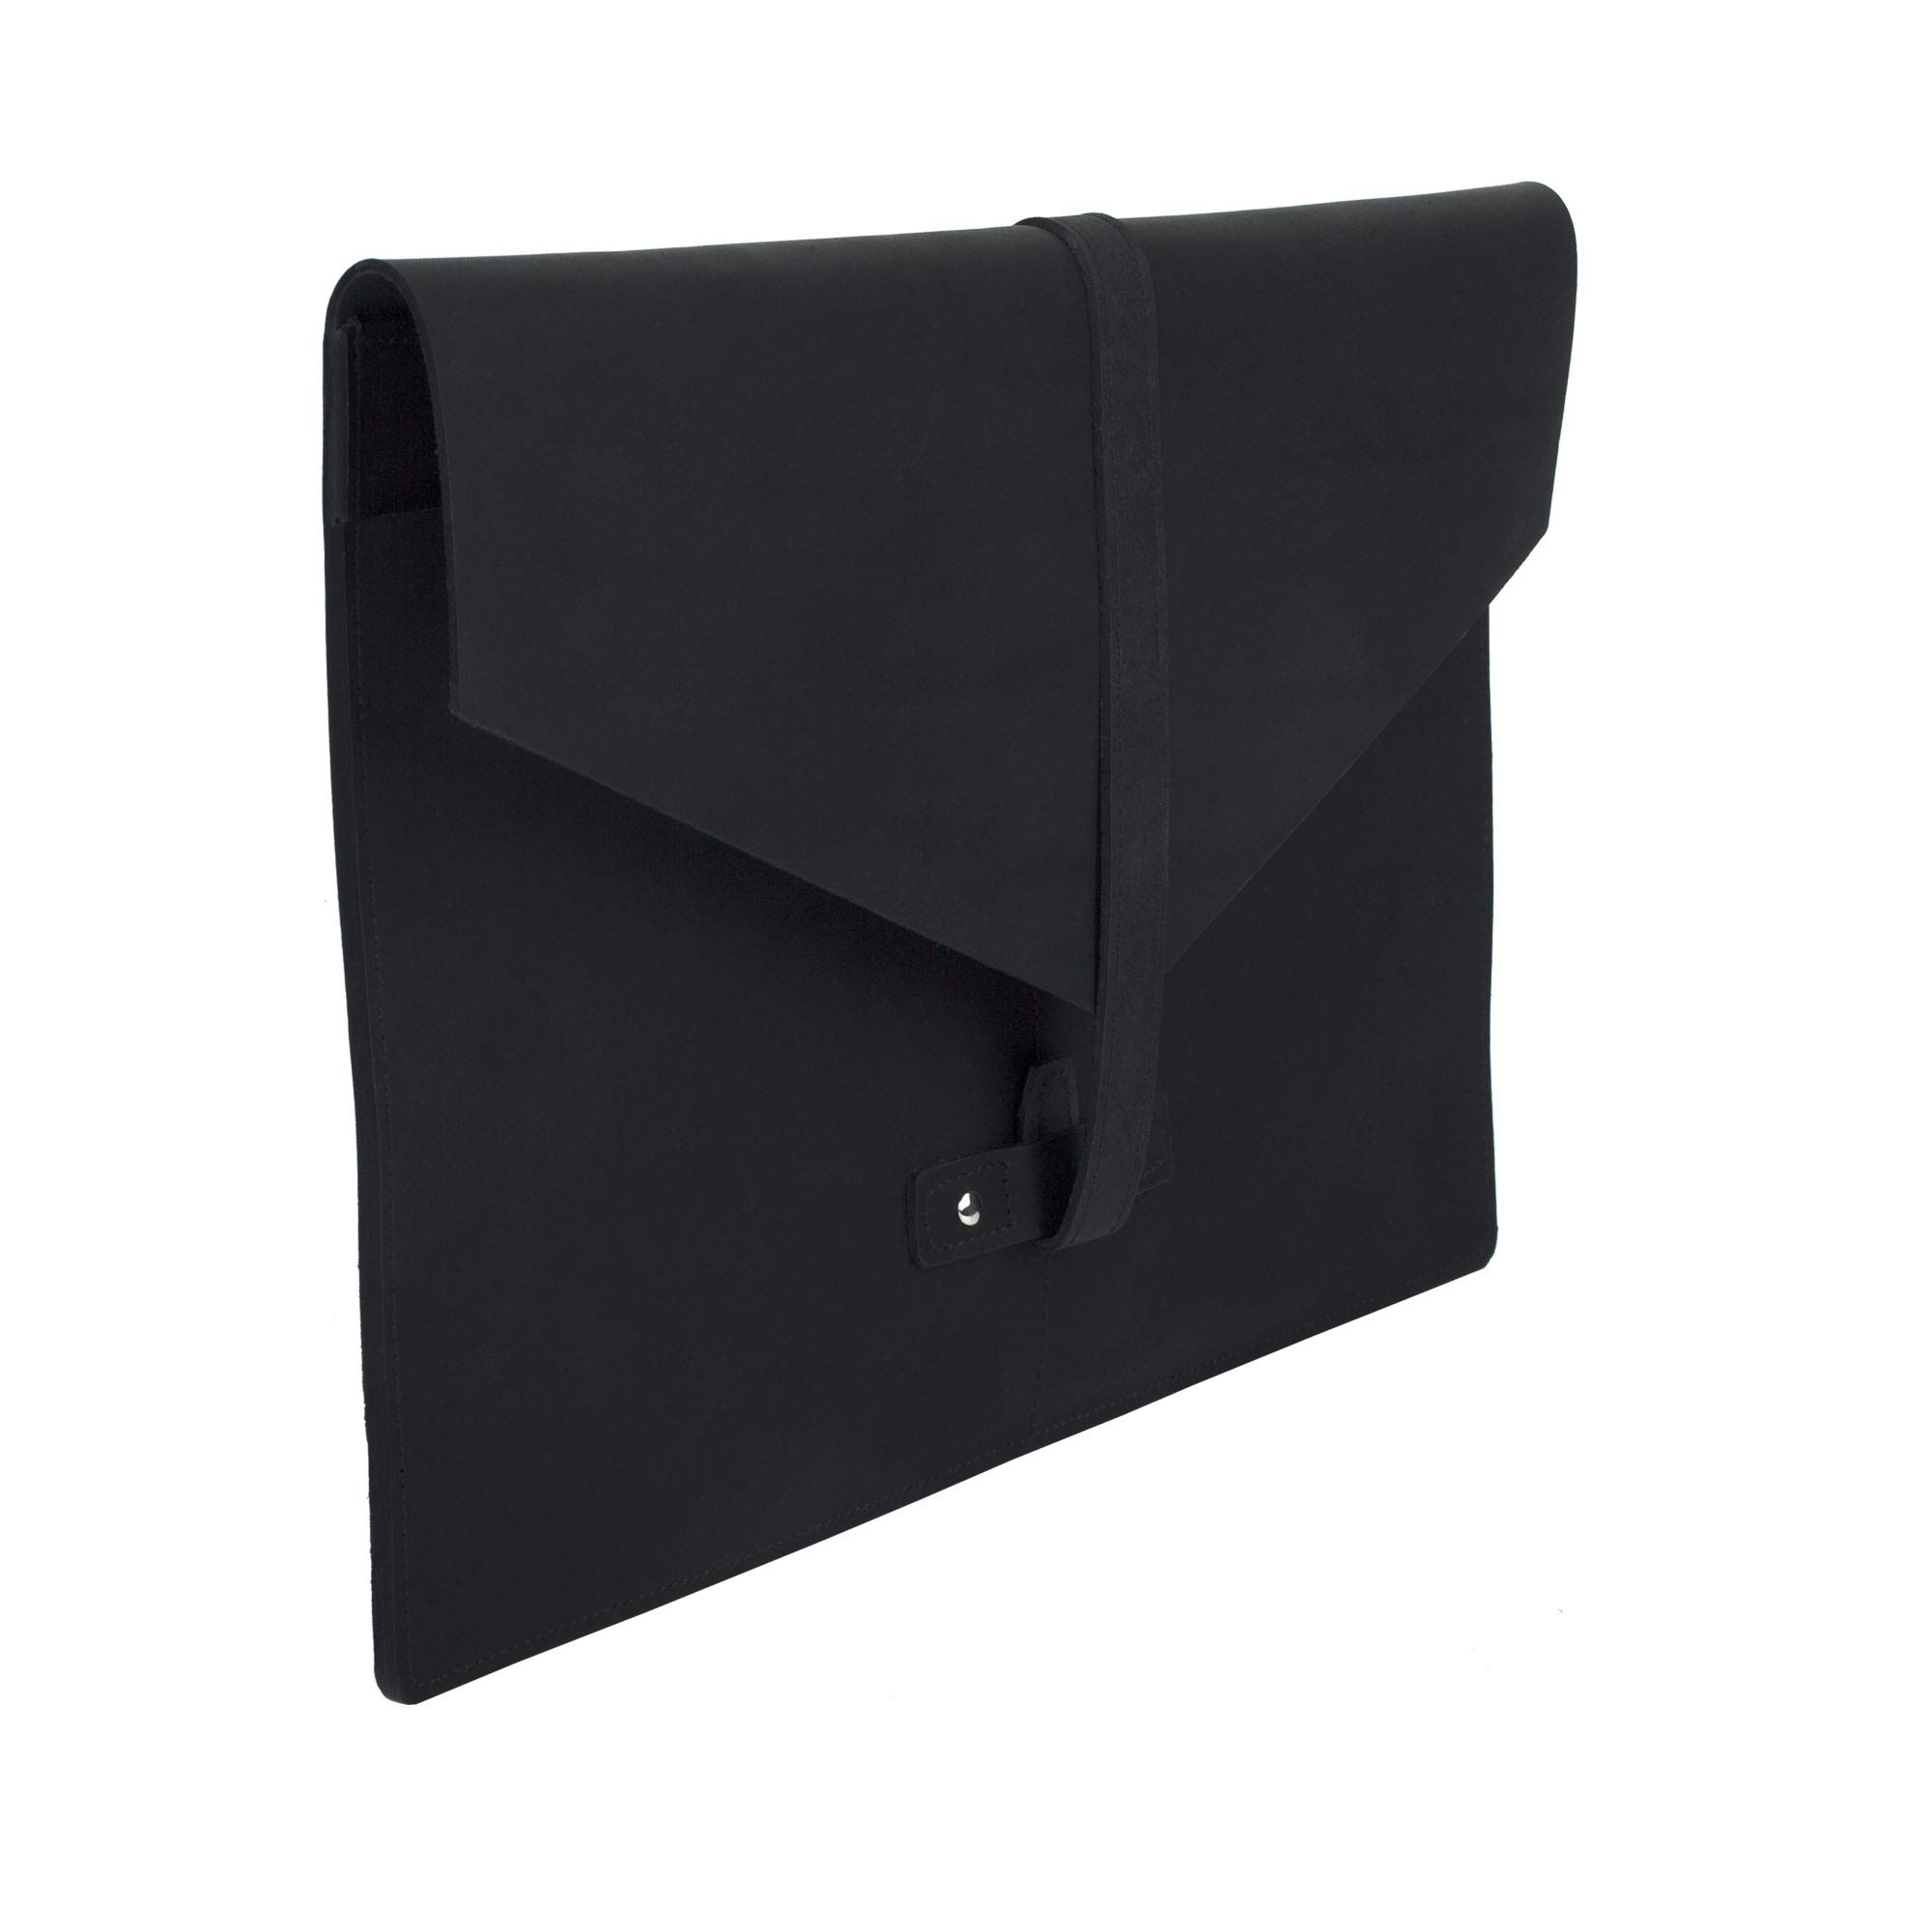 SLATE COLLECTION Belltown Small Laptop Sleeve, Full-Grain Leather (Midnight, fits 13'' Laptop) by SLATE COLLECTION (Image #6)